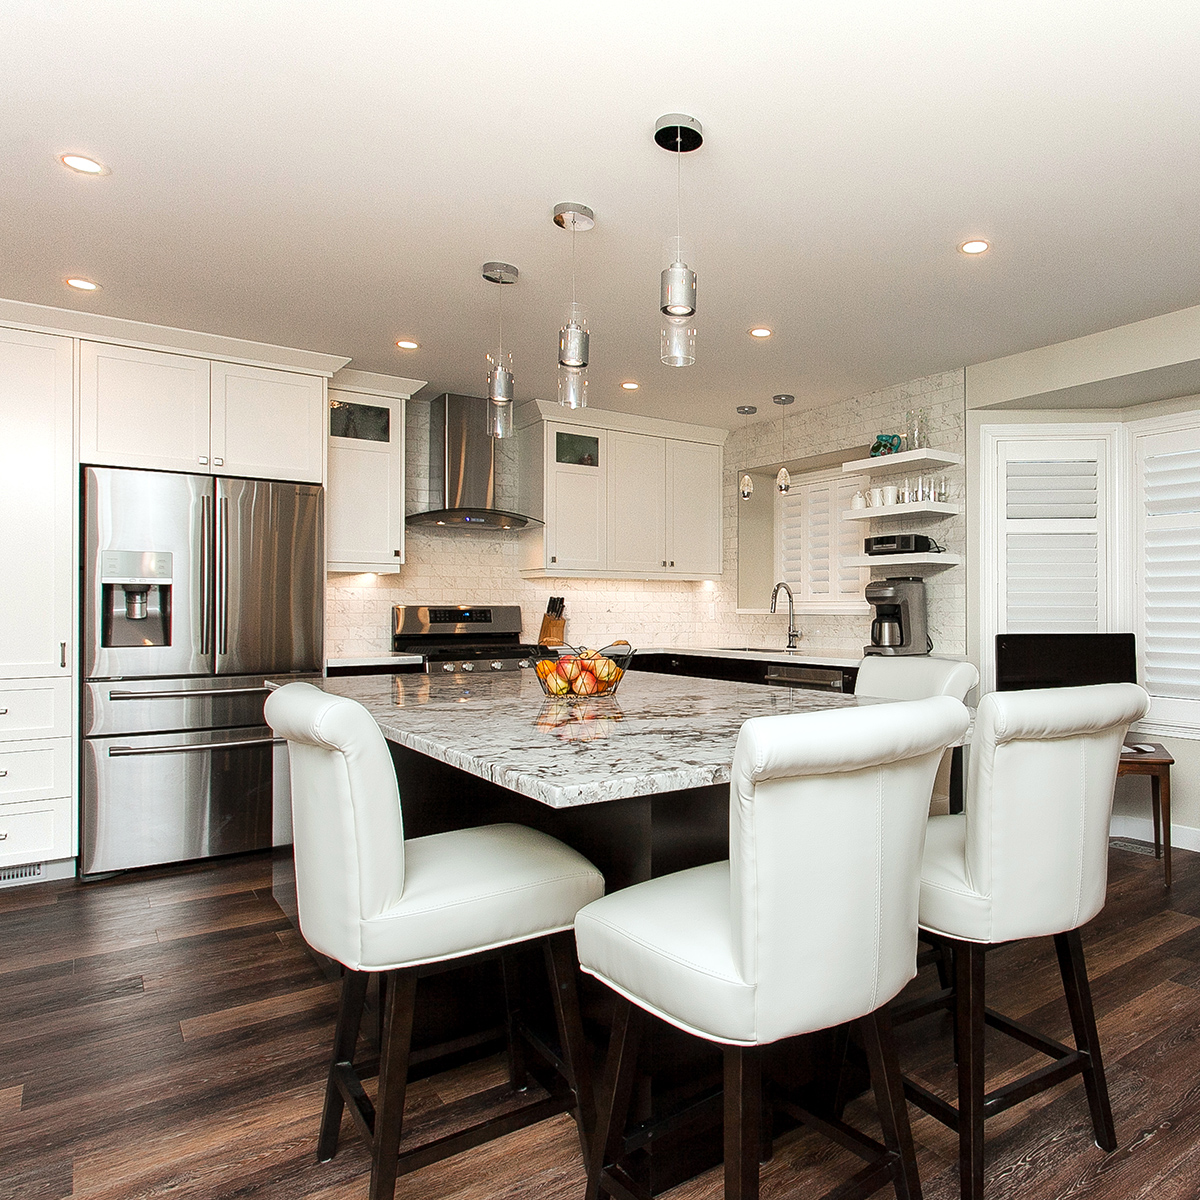 Kitchen after image by Jostar Interiors